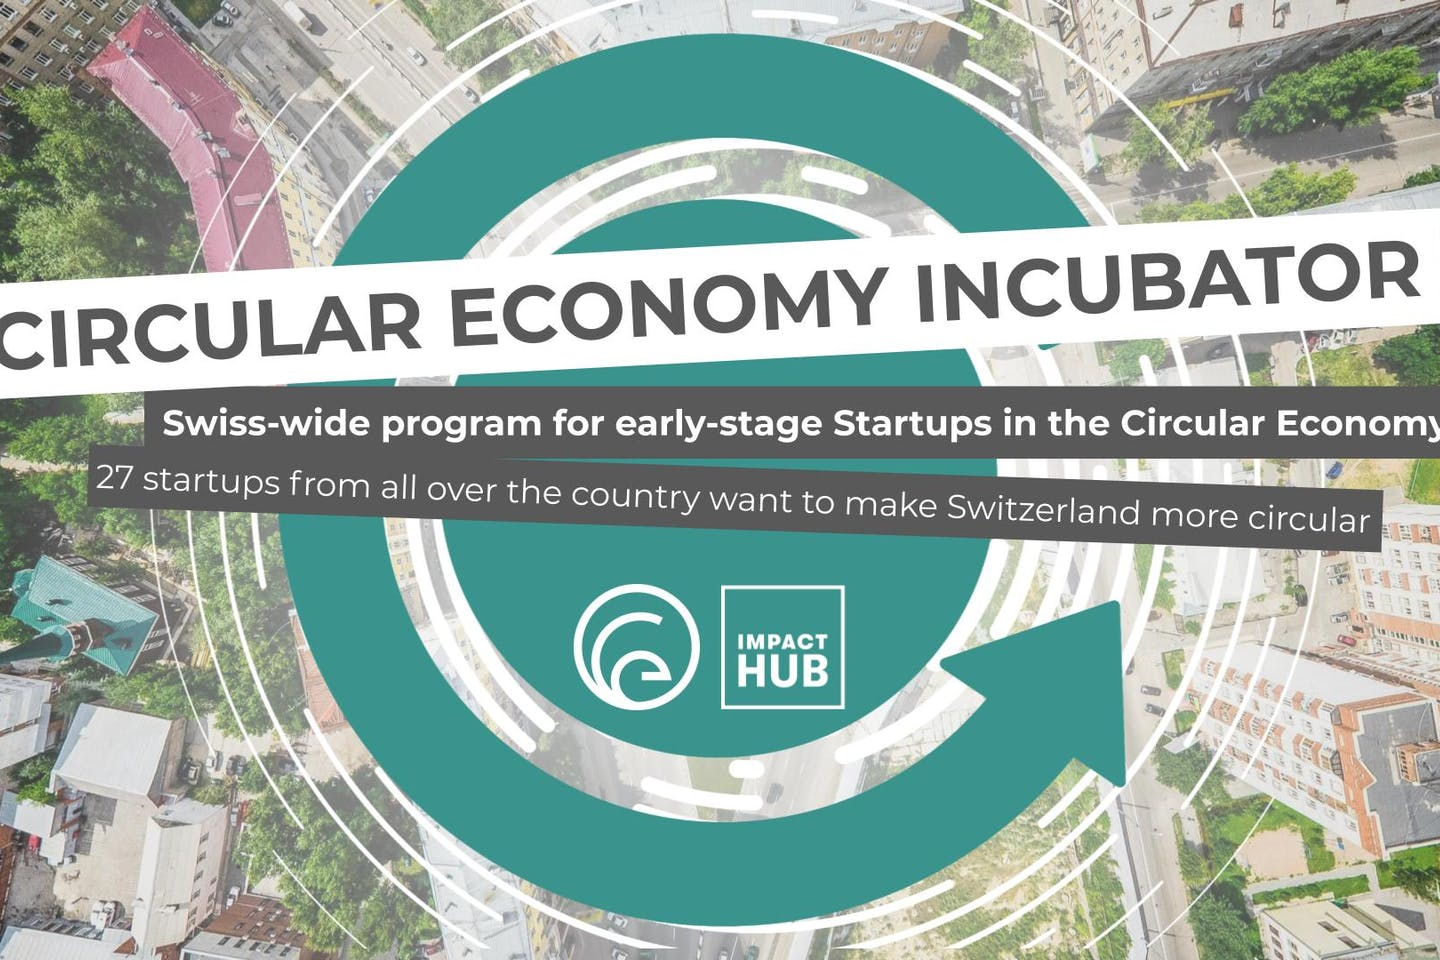 Doing business more sustainably after the crisis: 27 Swiss start-ups show how this can be possible